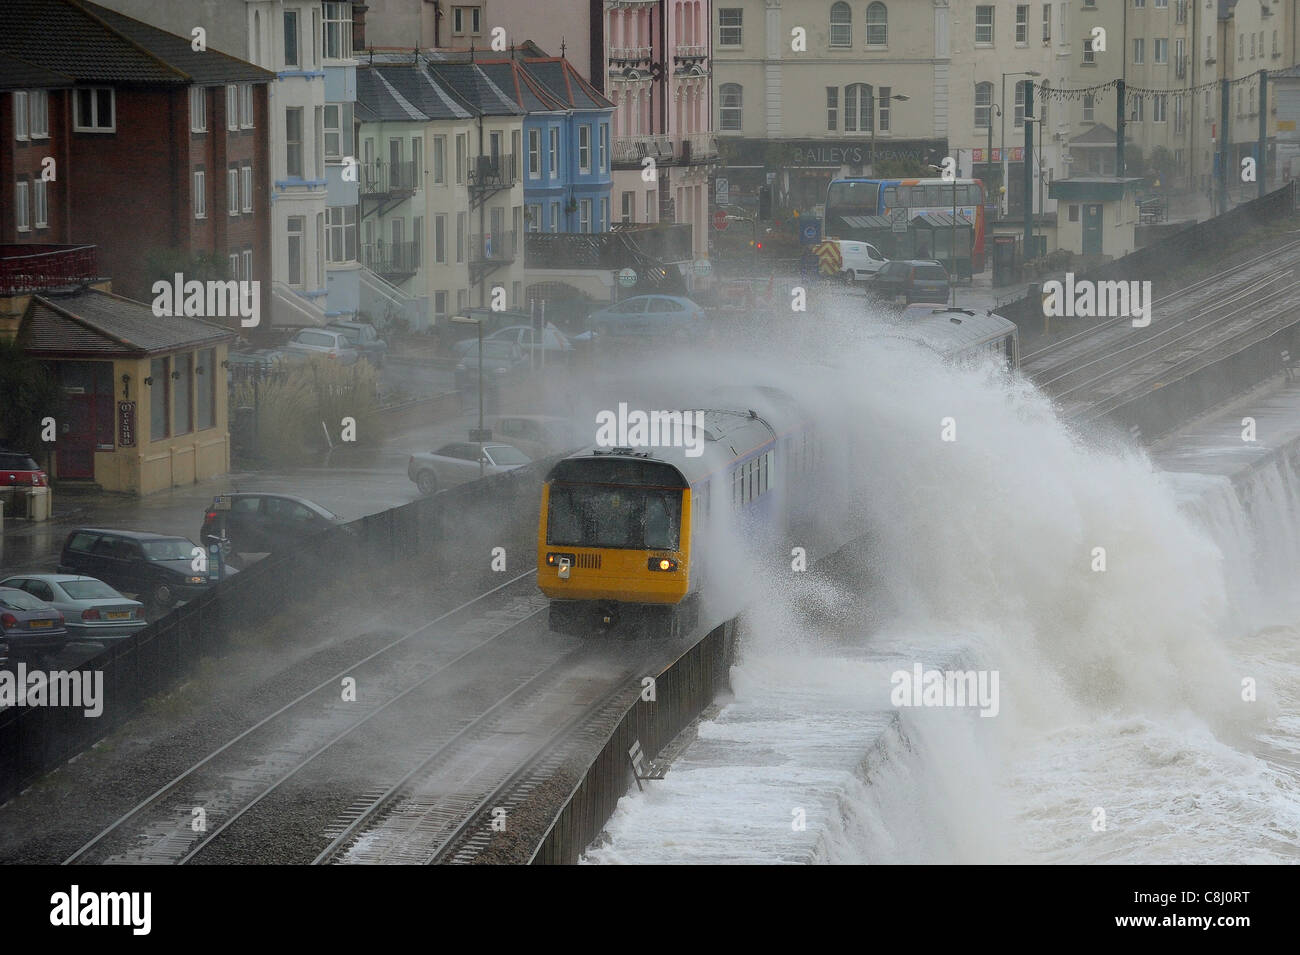 A train is battered by waves as it leaves the station at Dawlish in Devon. - Stock Image